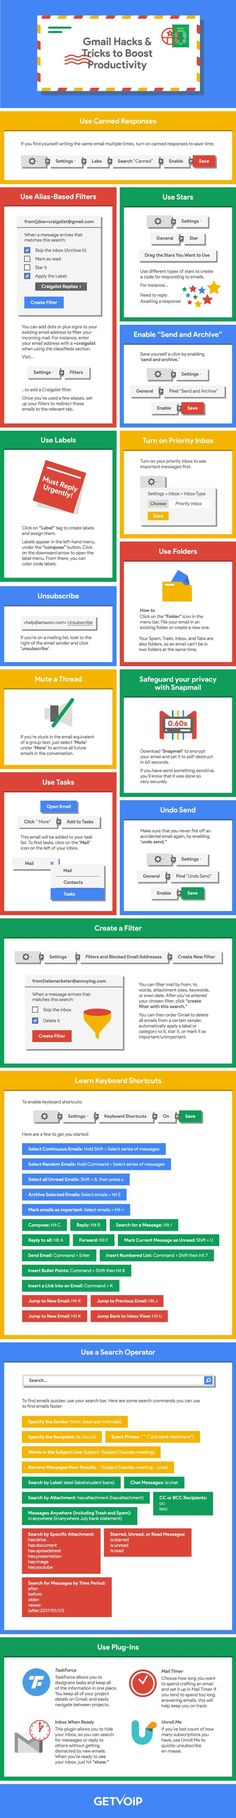 Gmail tips: Don't waste hours in your inbox! Click to blog for 16 Gmail hacks and tricks to reclaim your life. Entrepreneurs, bloggers, business owners: Repin this infographic! #gmail #productivity #entrepreneurlife #businesstips #infographic #timemanagement